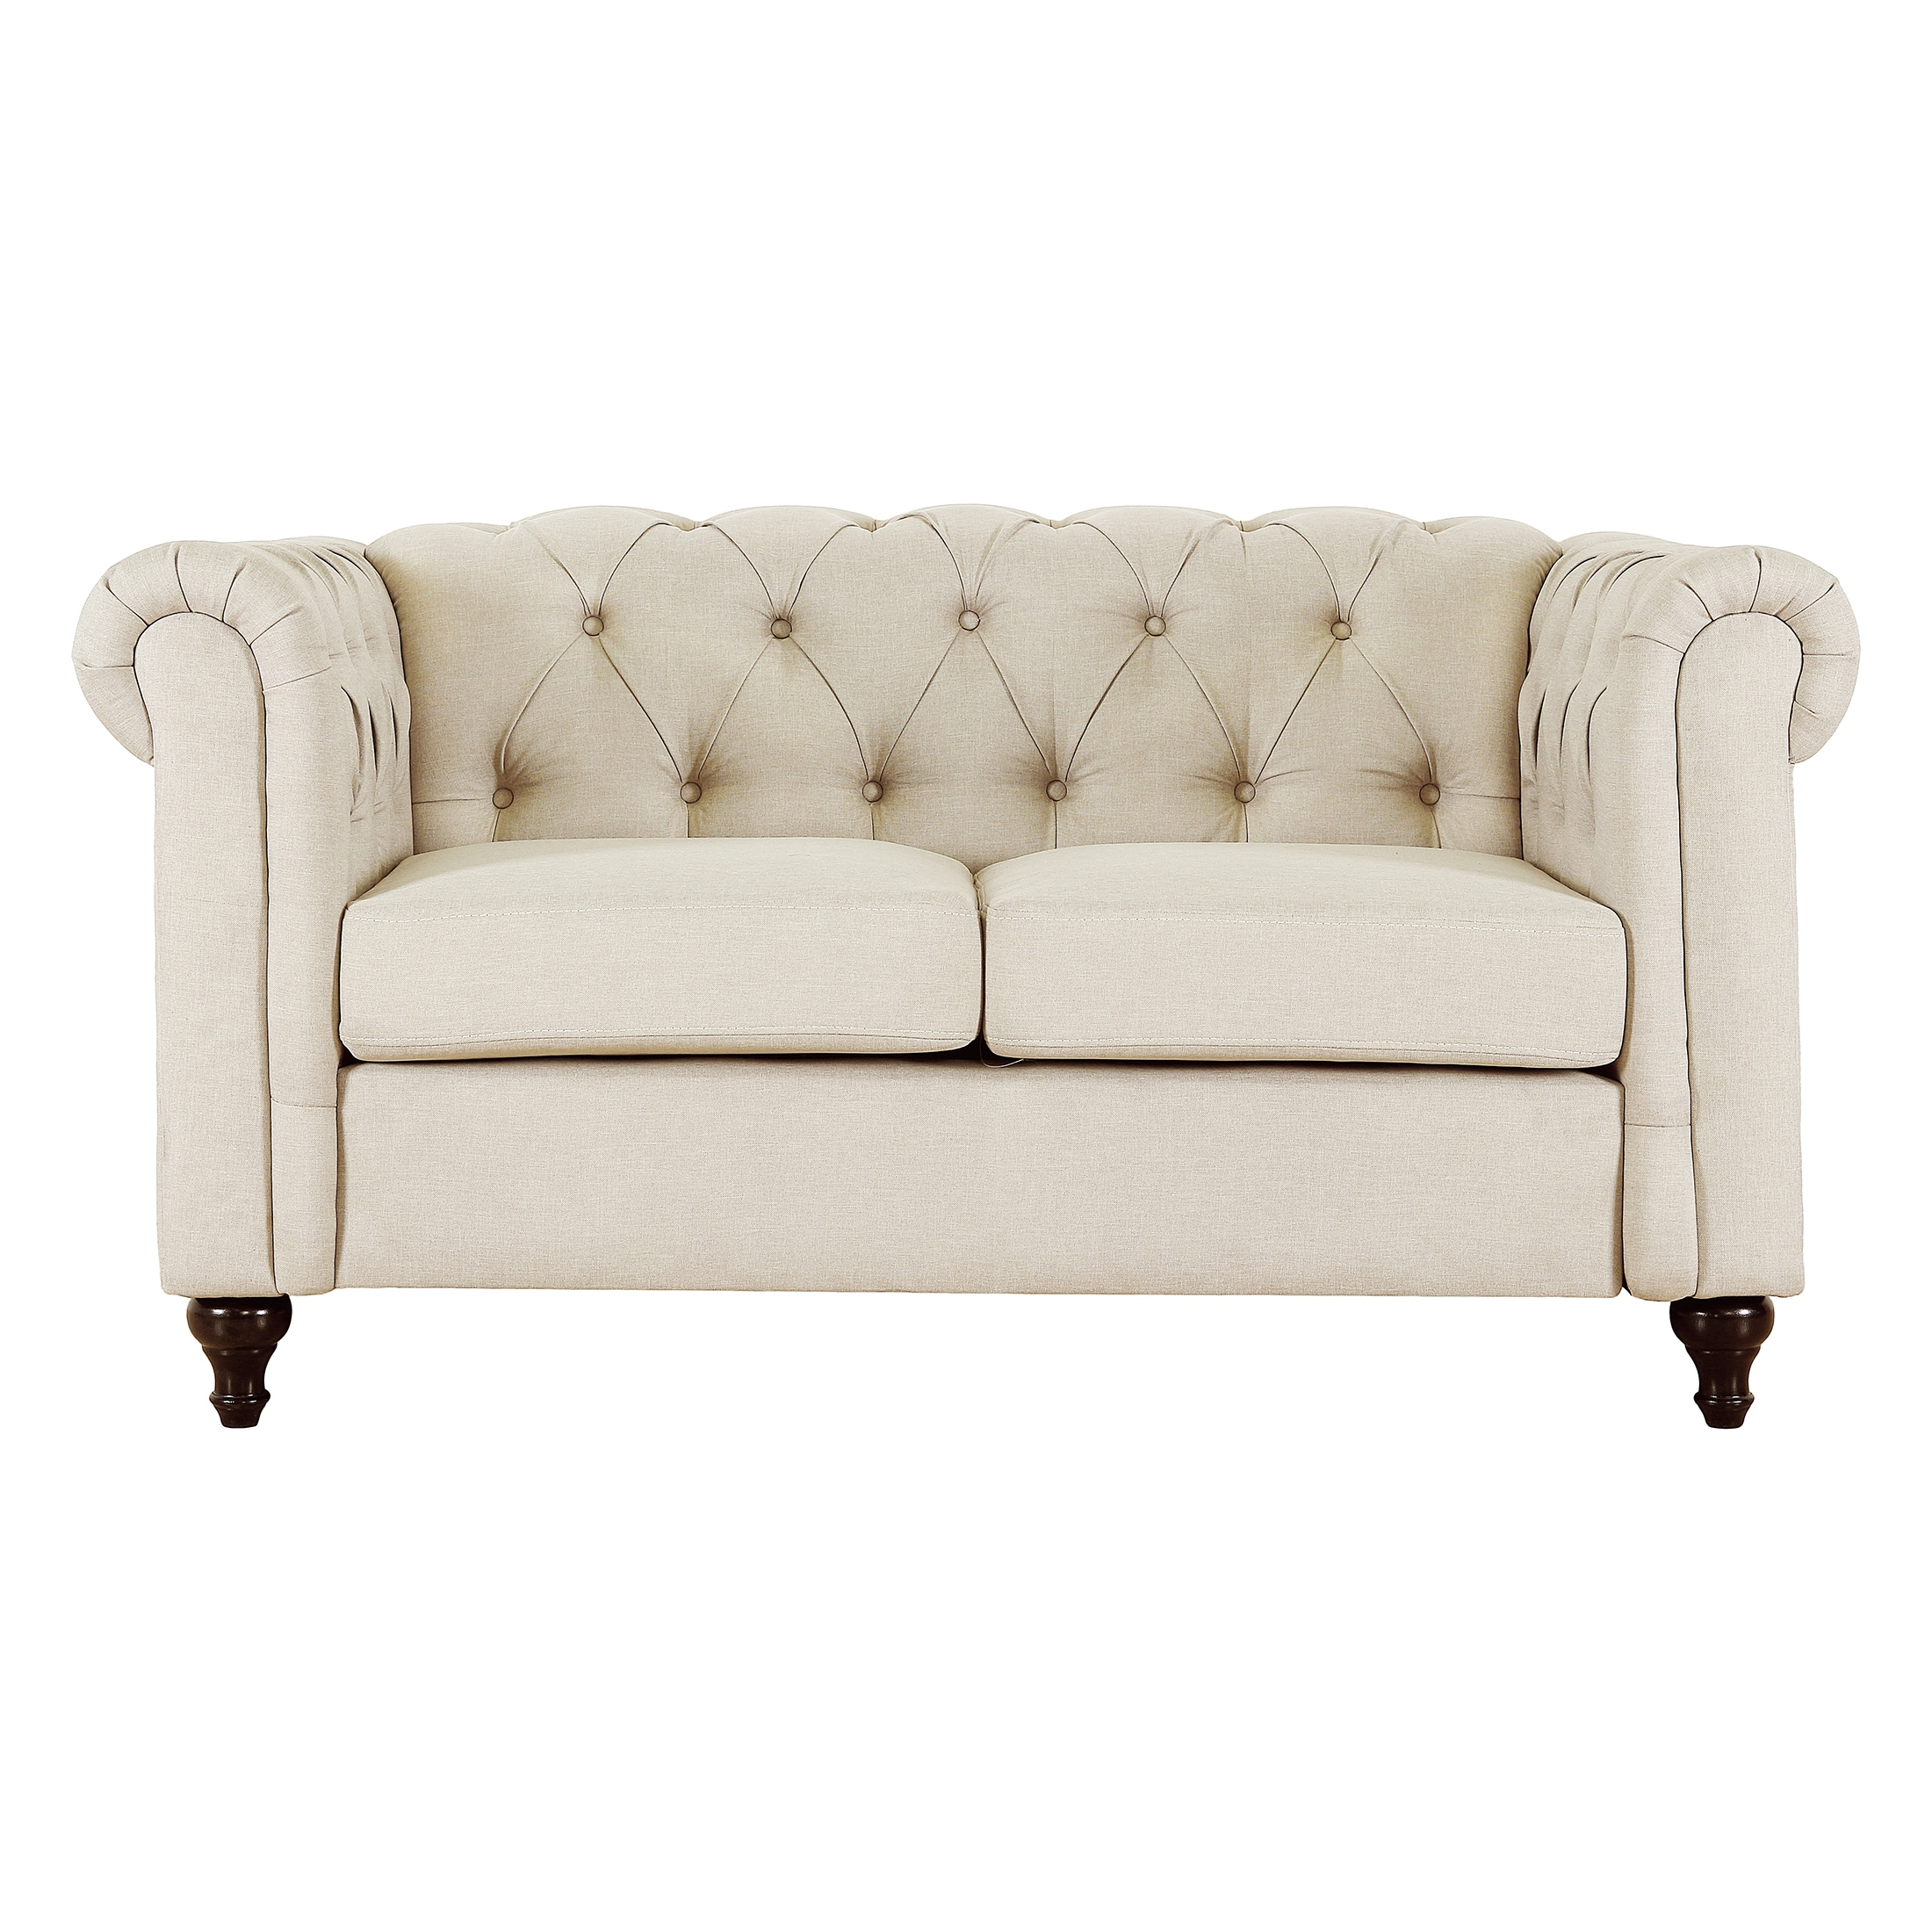 transitional threshold with by base height products item width flexsteel trim wood hampton loveseat exposed rail